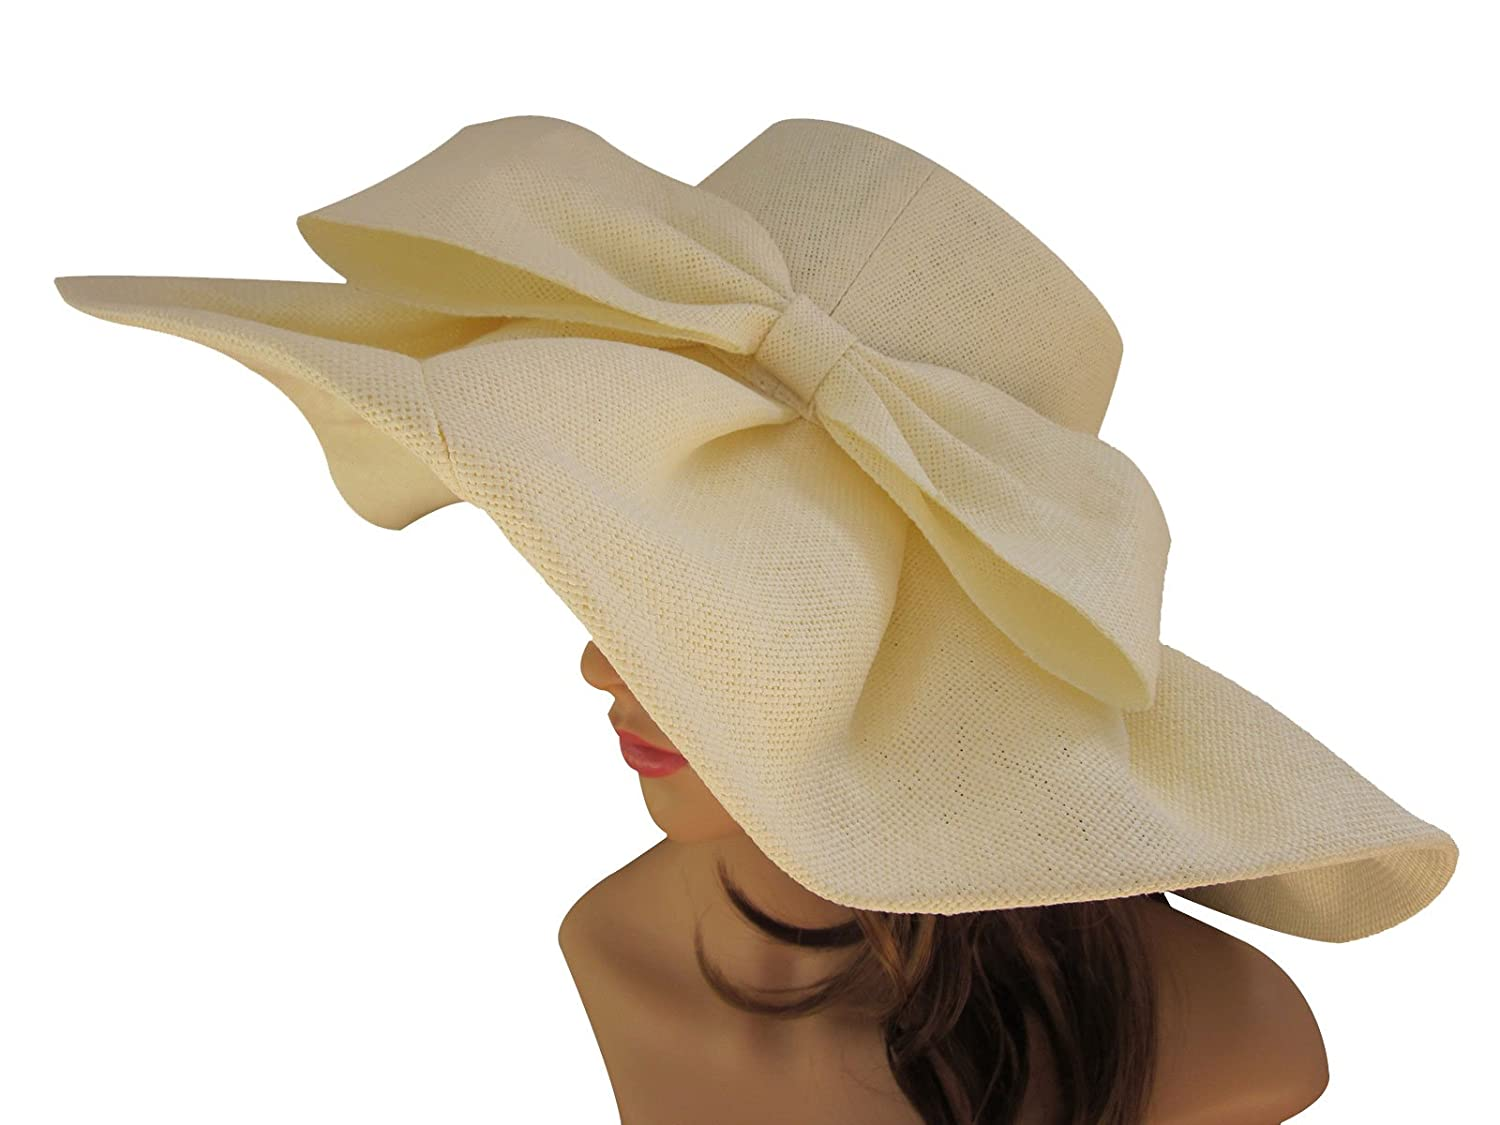 Edwardian Hats Titanic Tea Party Linen Summer Womens Kentucky Derby Wide Brim